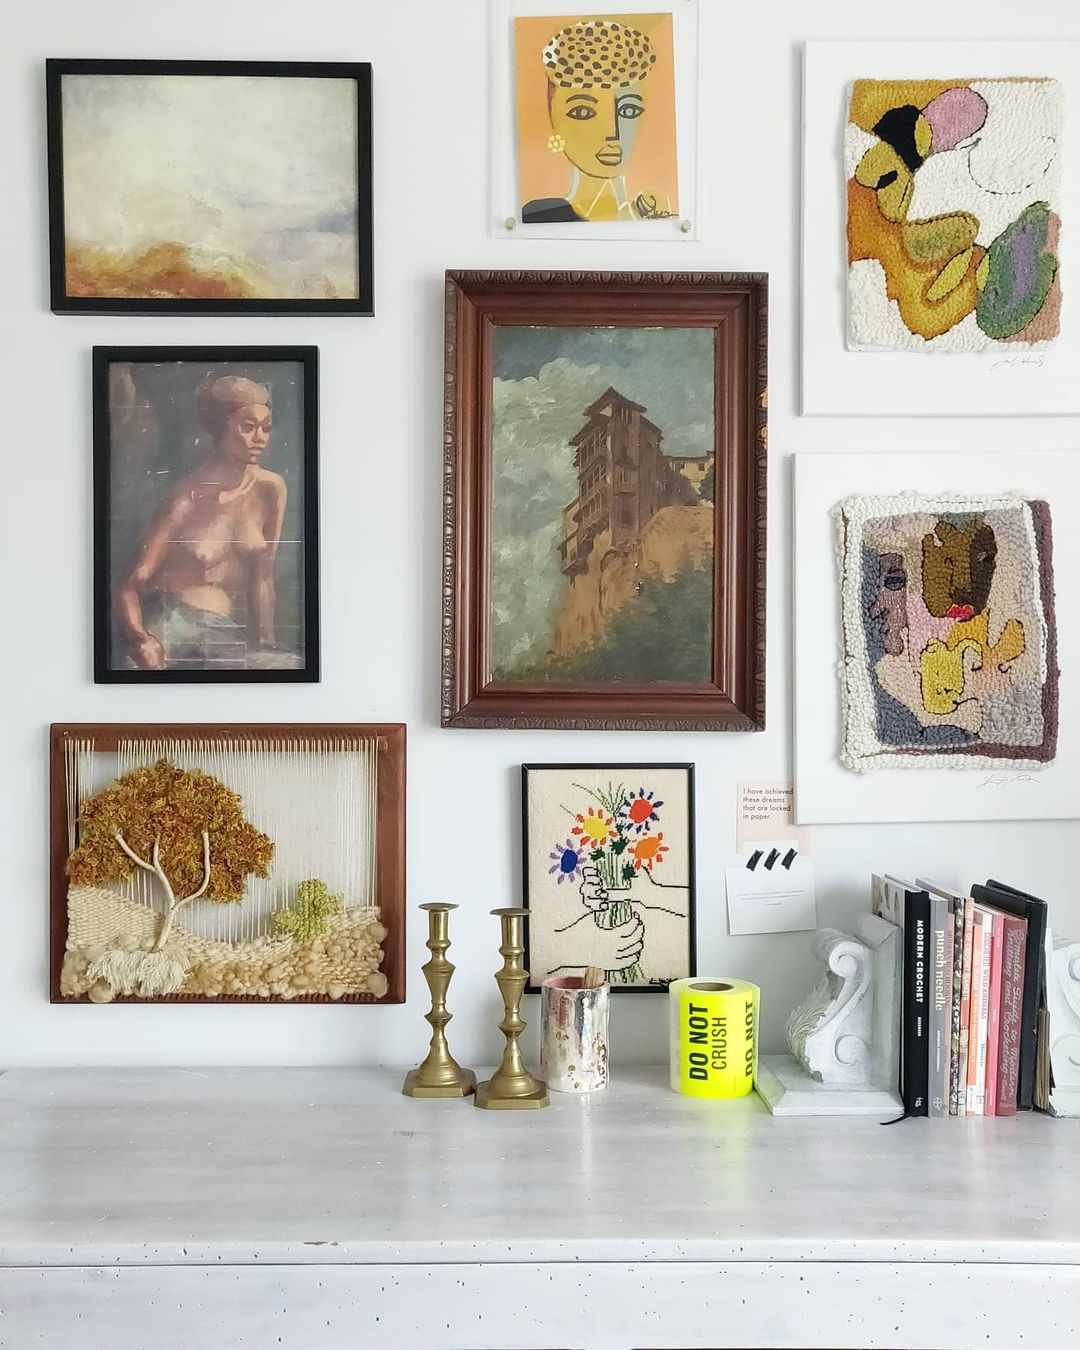 Vintage art hung on a gallery wall.